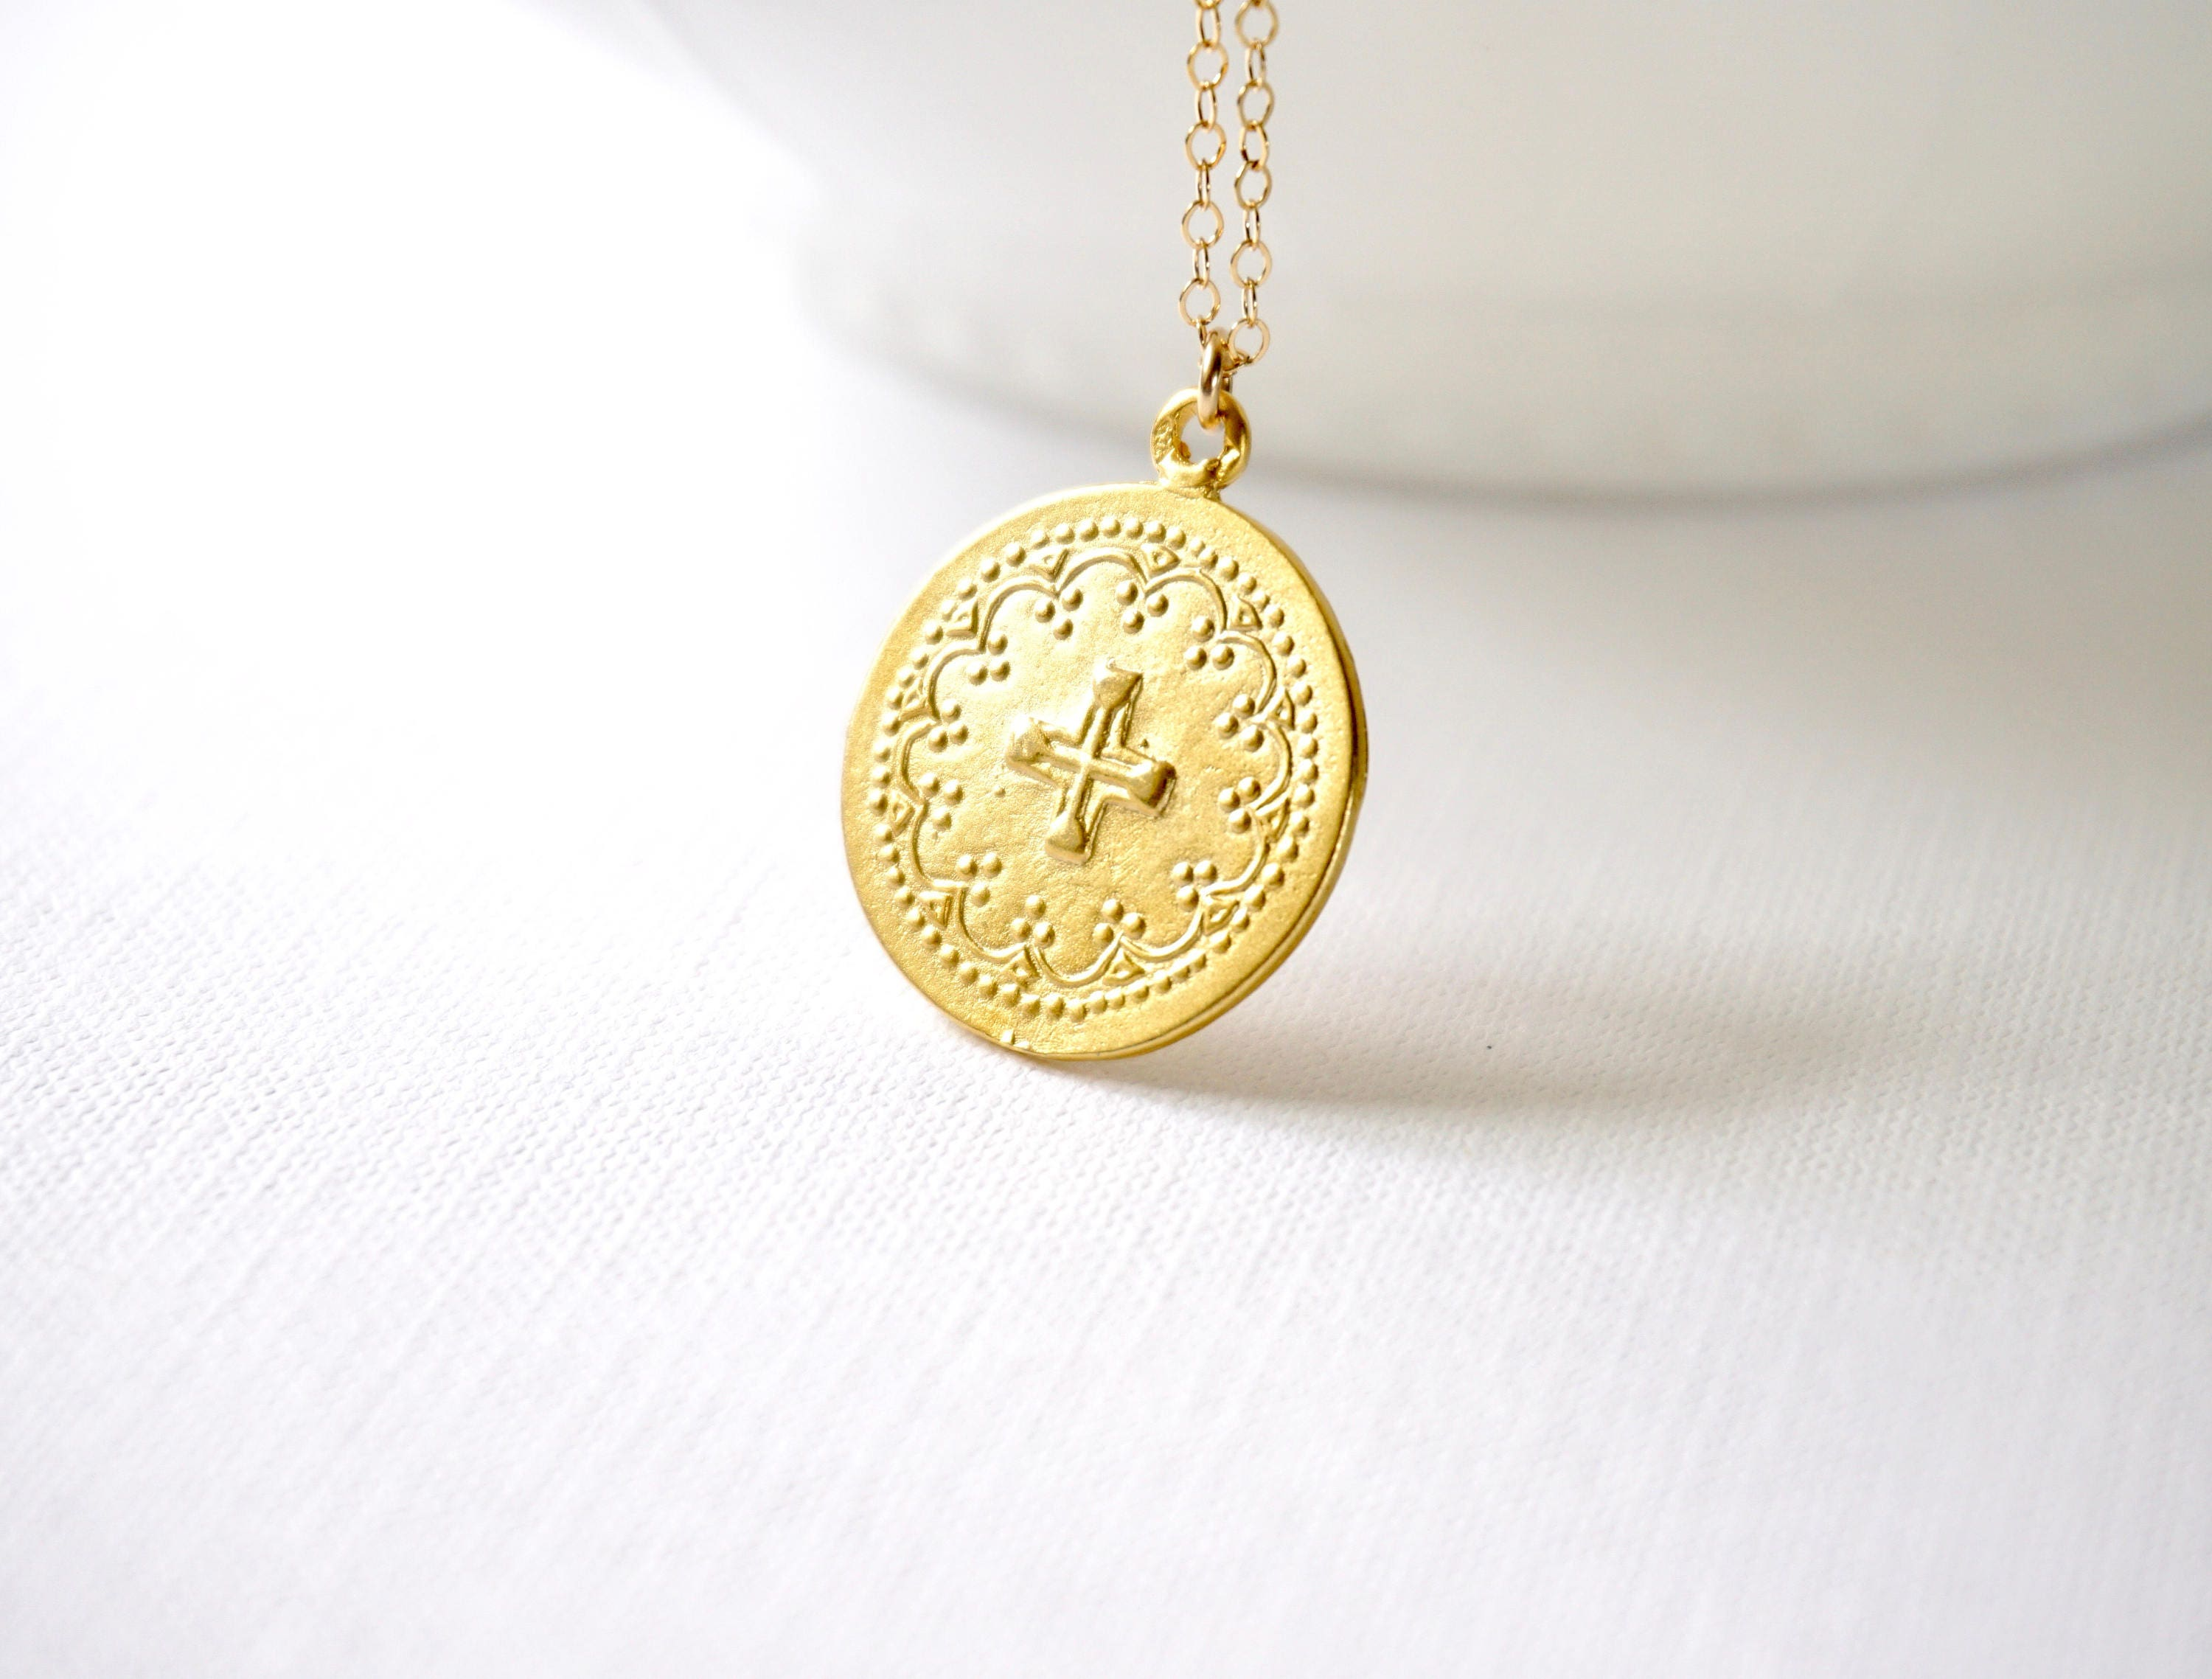 m plated chanel large starburst gold metal i necklace medallion cc charm pendant dallion